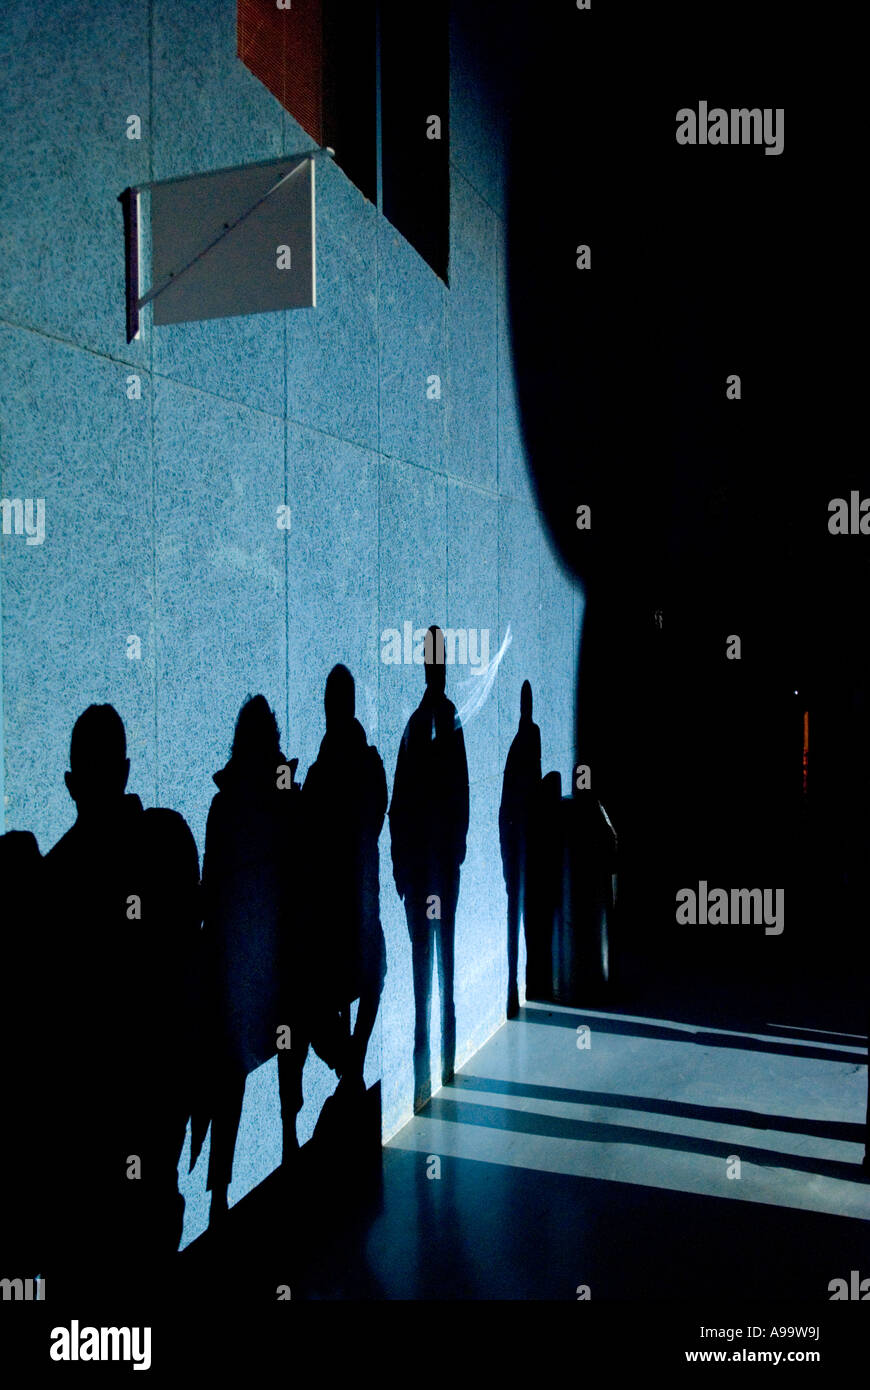 440 a line of full length shadows of people on a wall - Stock Image